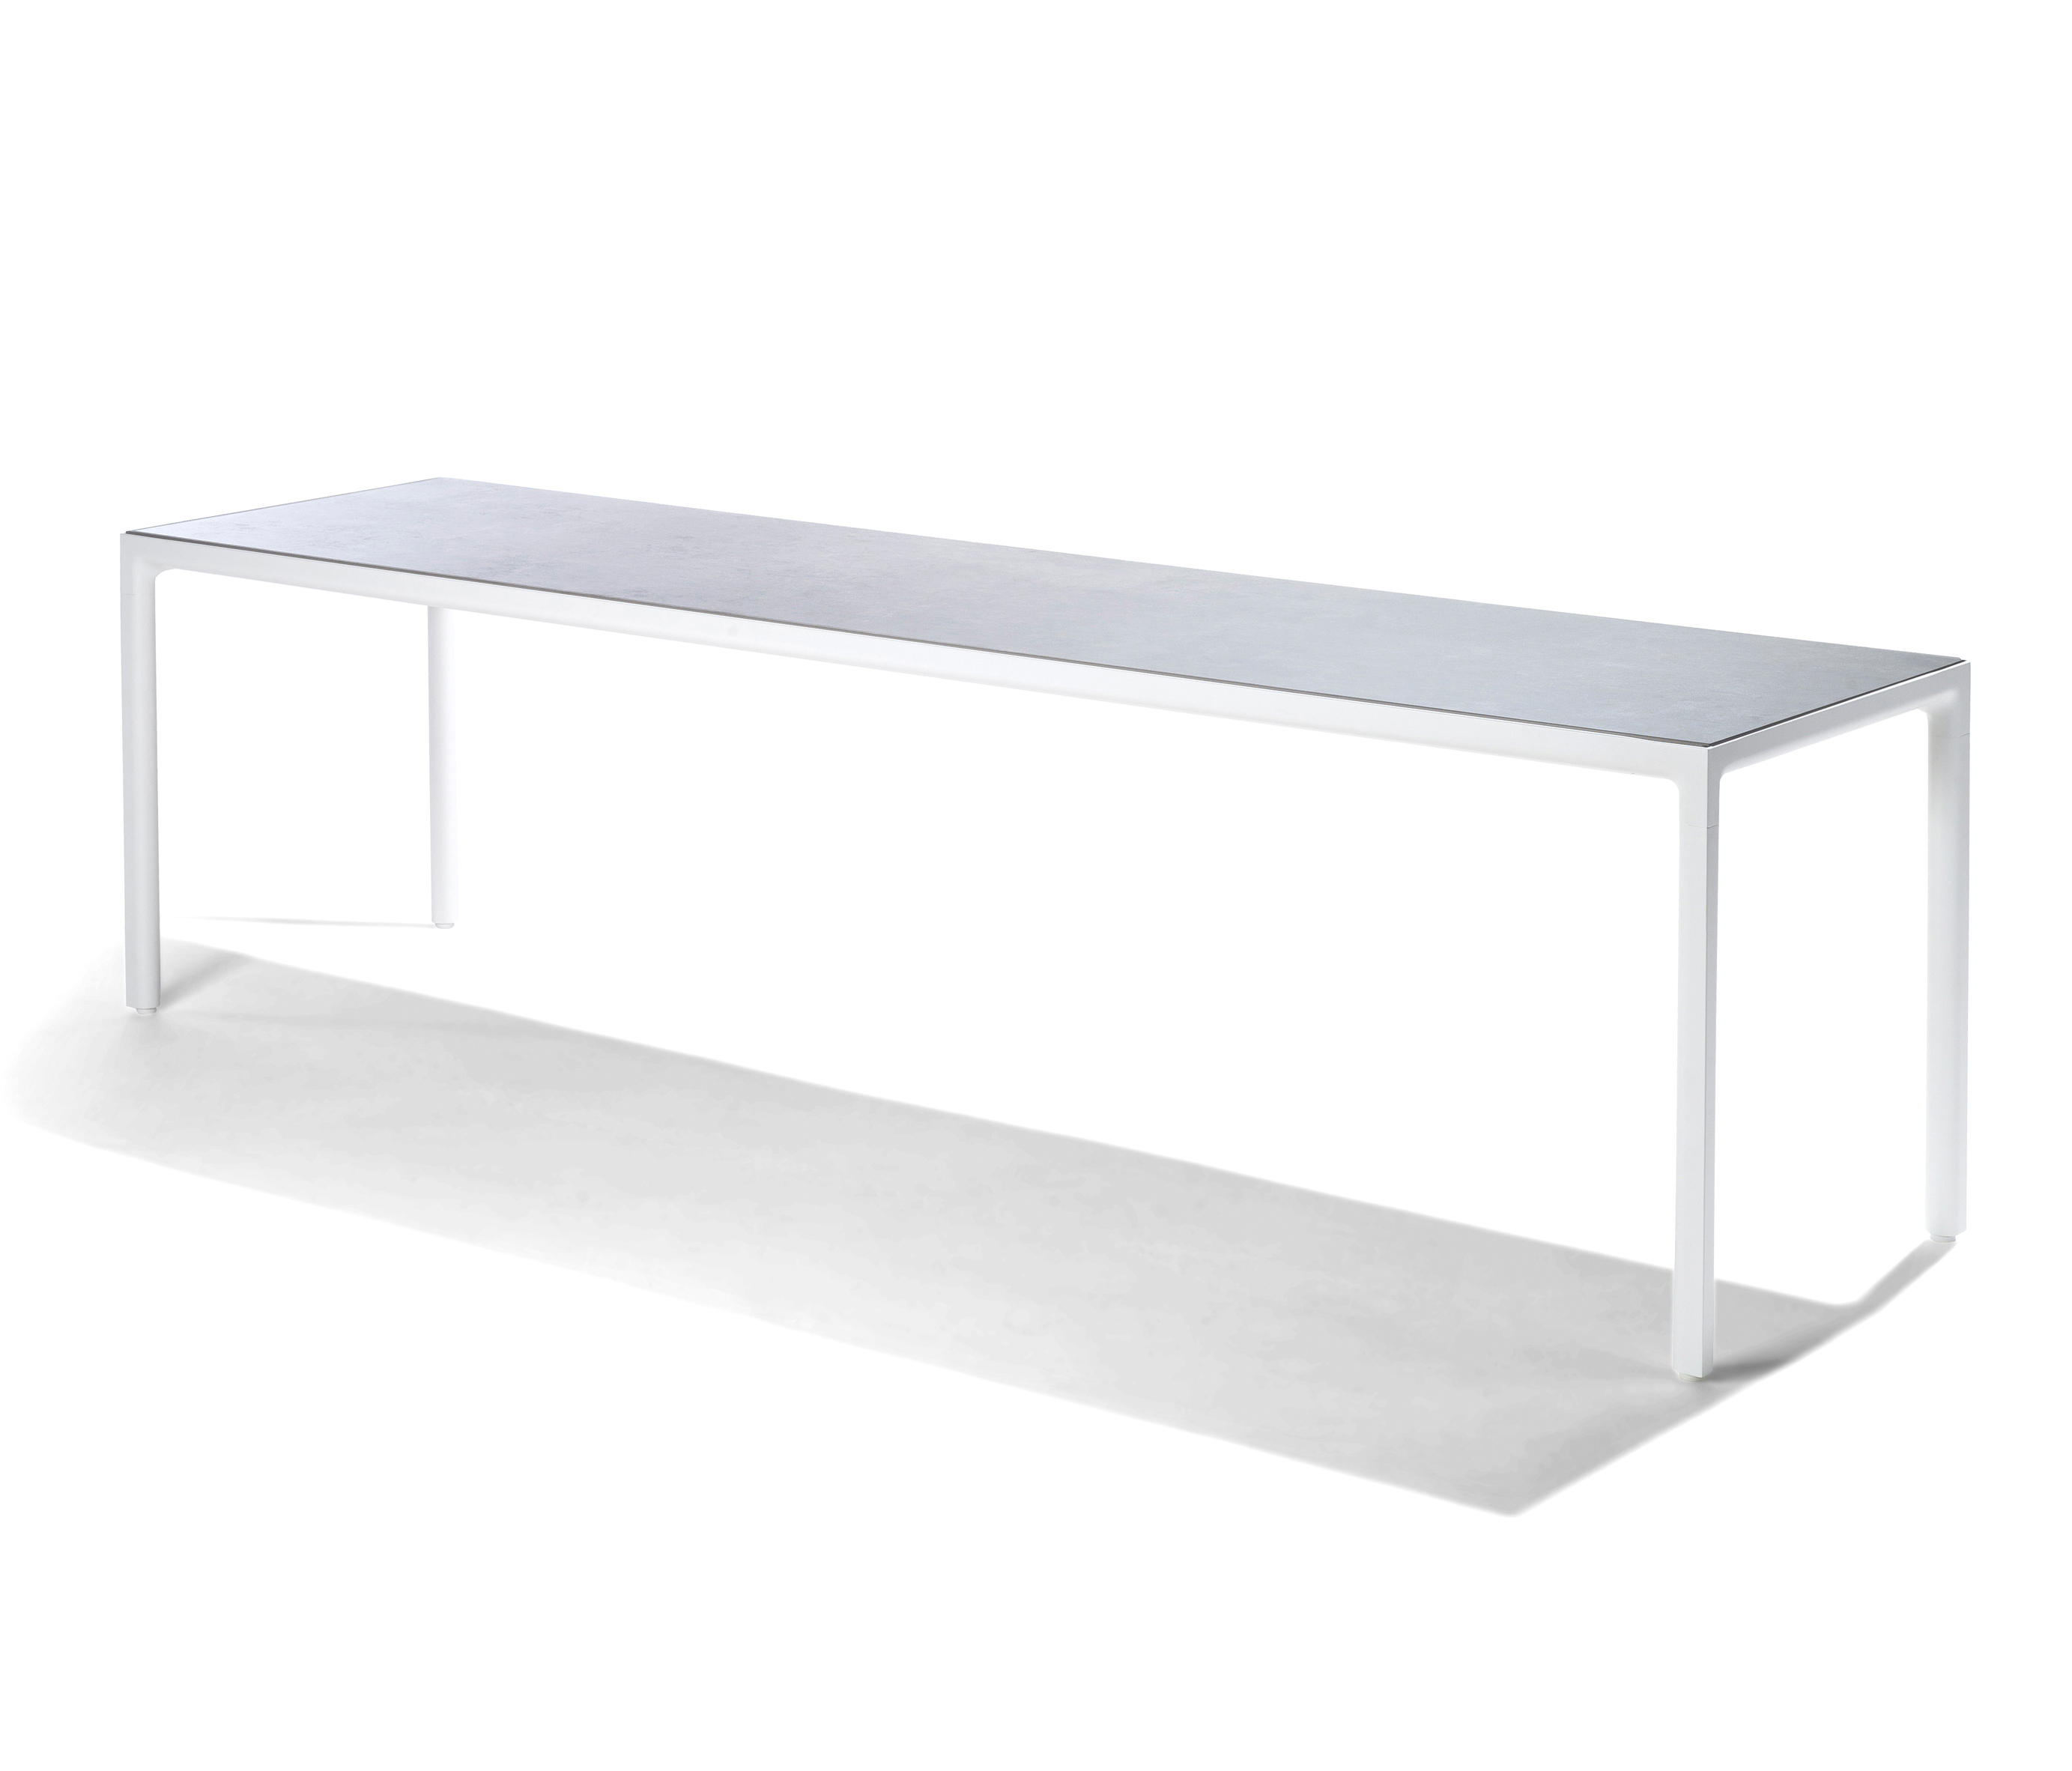 Illum slim dining table dining tables from trib for Slim dining table